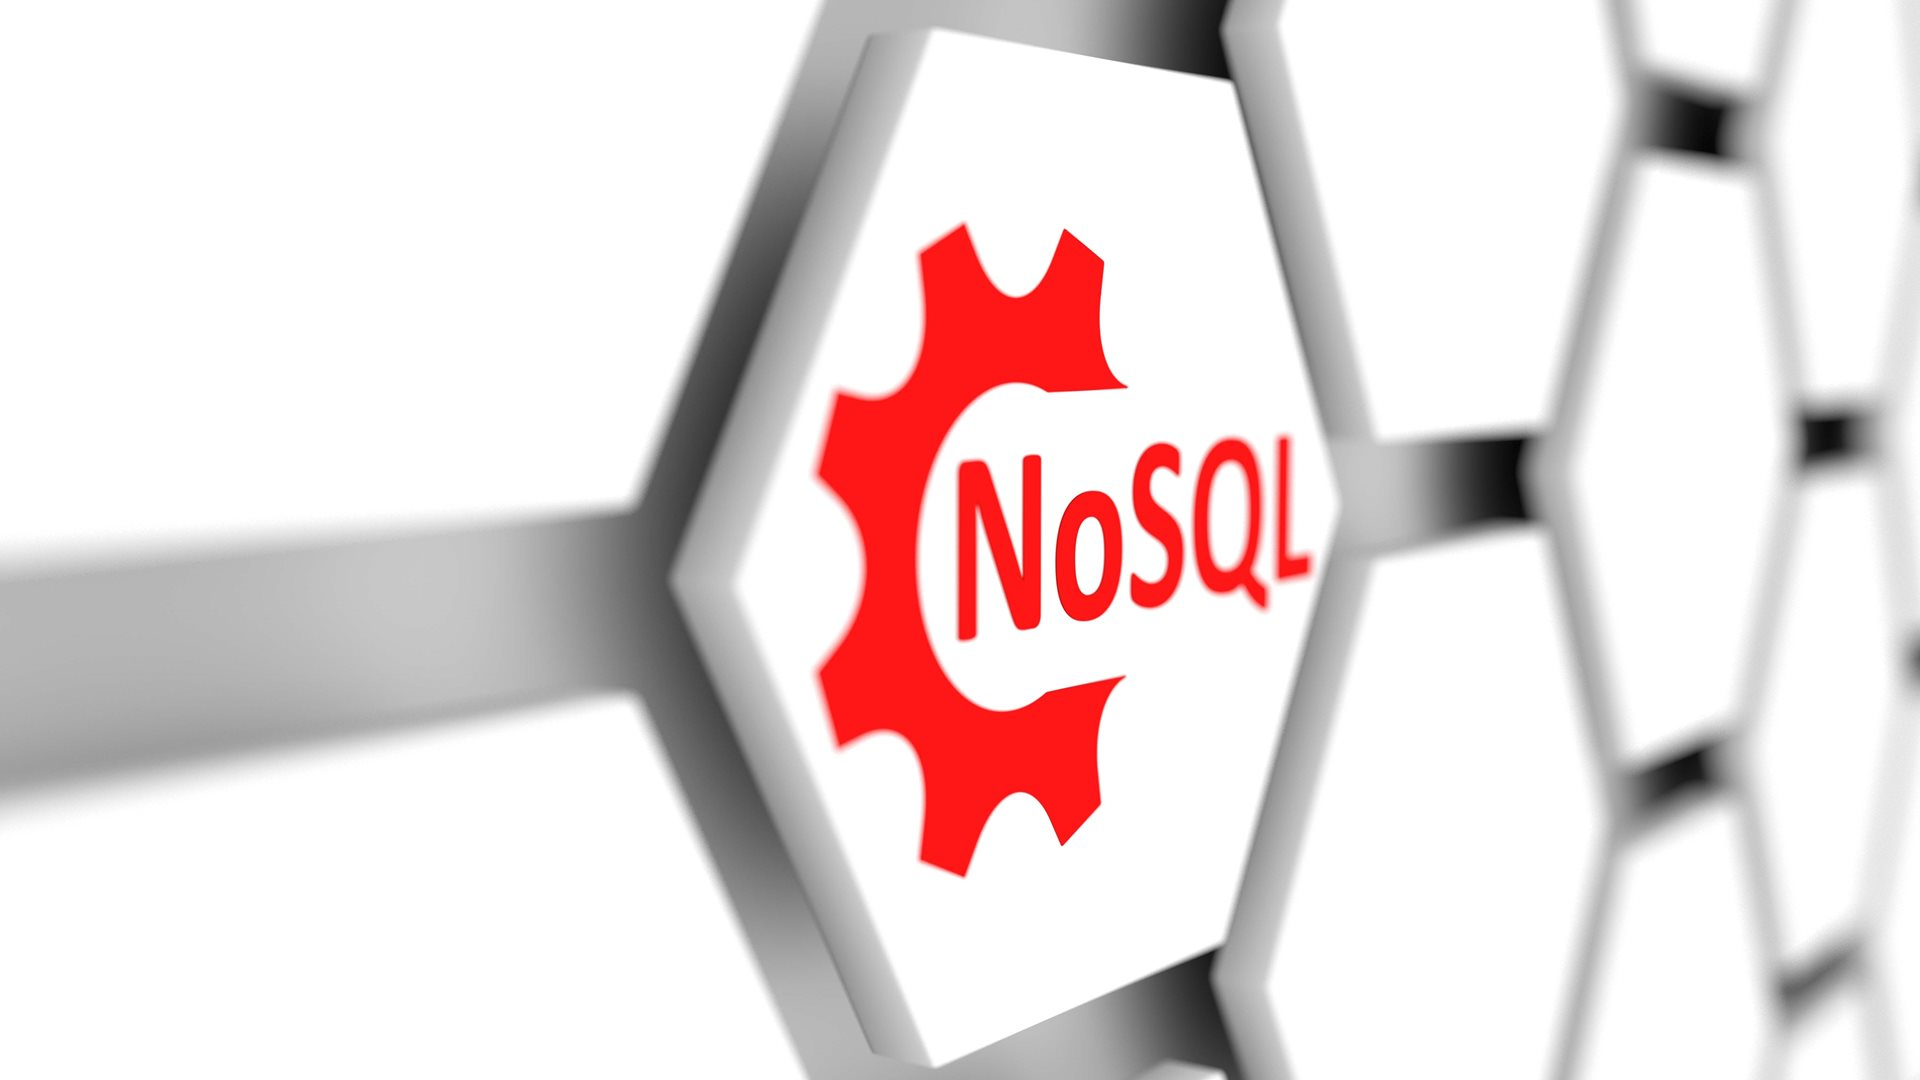 """NoSQL"" in red on white gears"